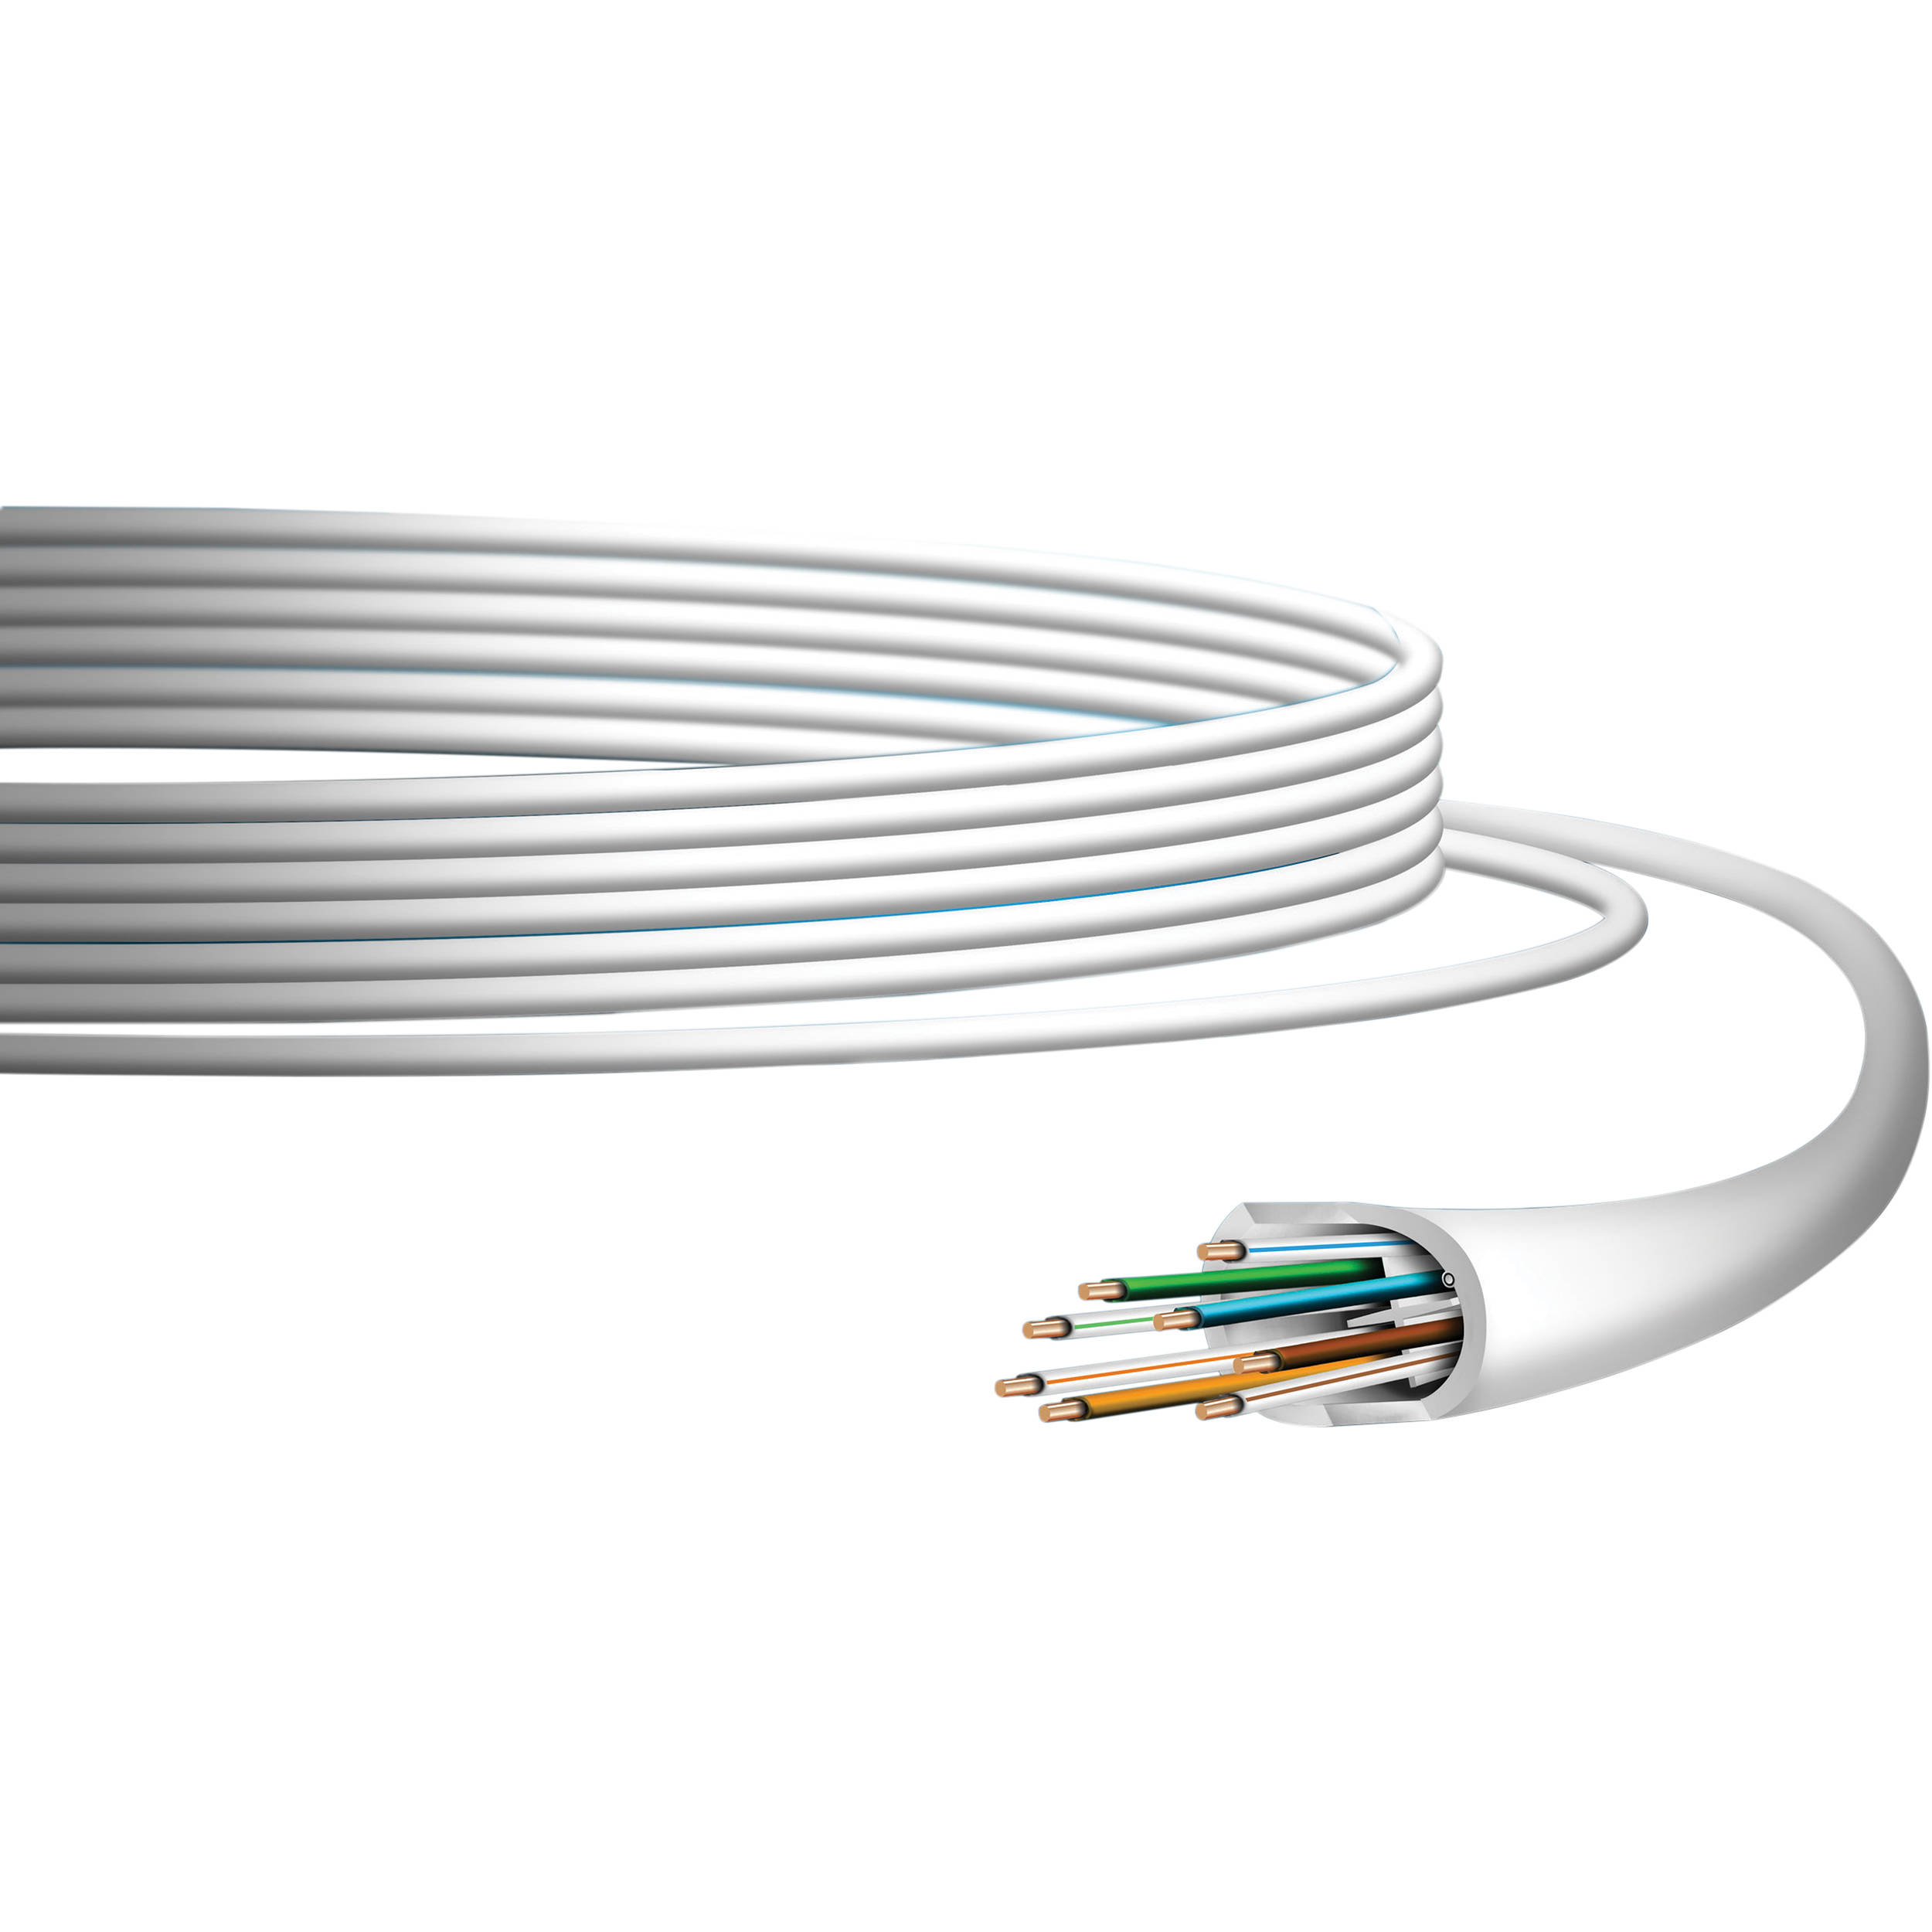 Ubiquiti Networks Unifi Category 6 Indoor Ethernet Uc C6 Cmr Bh Networking Wiring Cable 1000 White